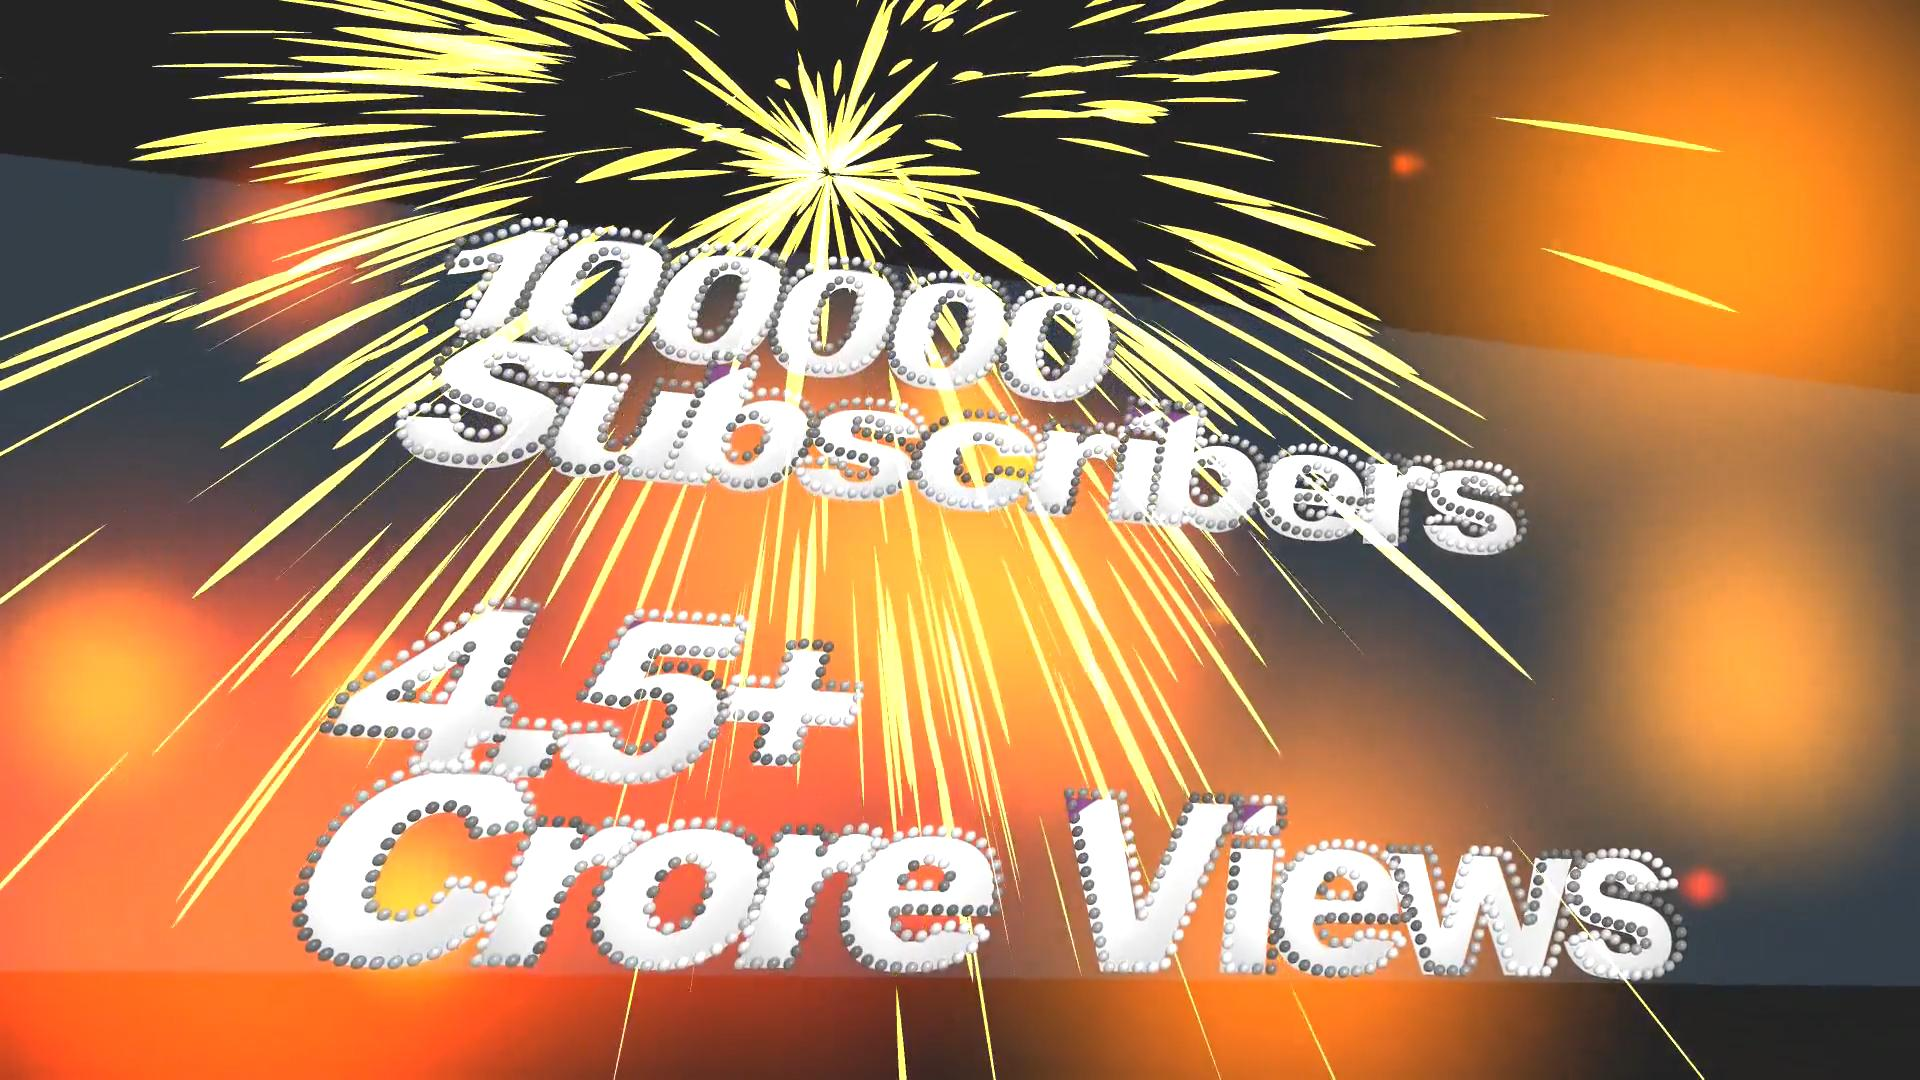 Thank You Greetings to Subscribers of YouTube